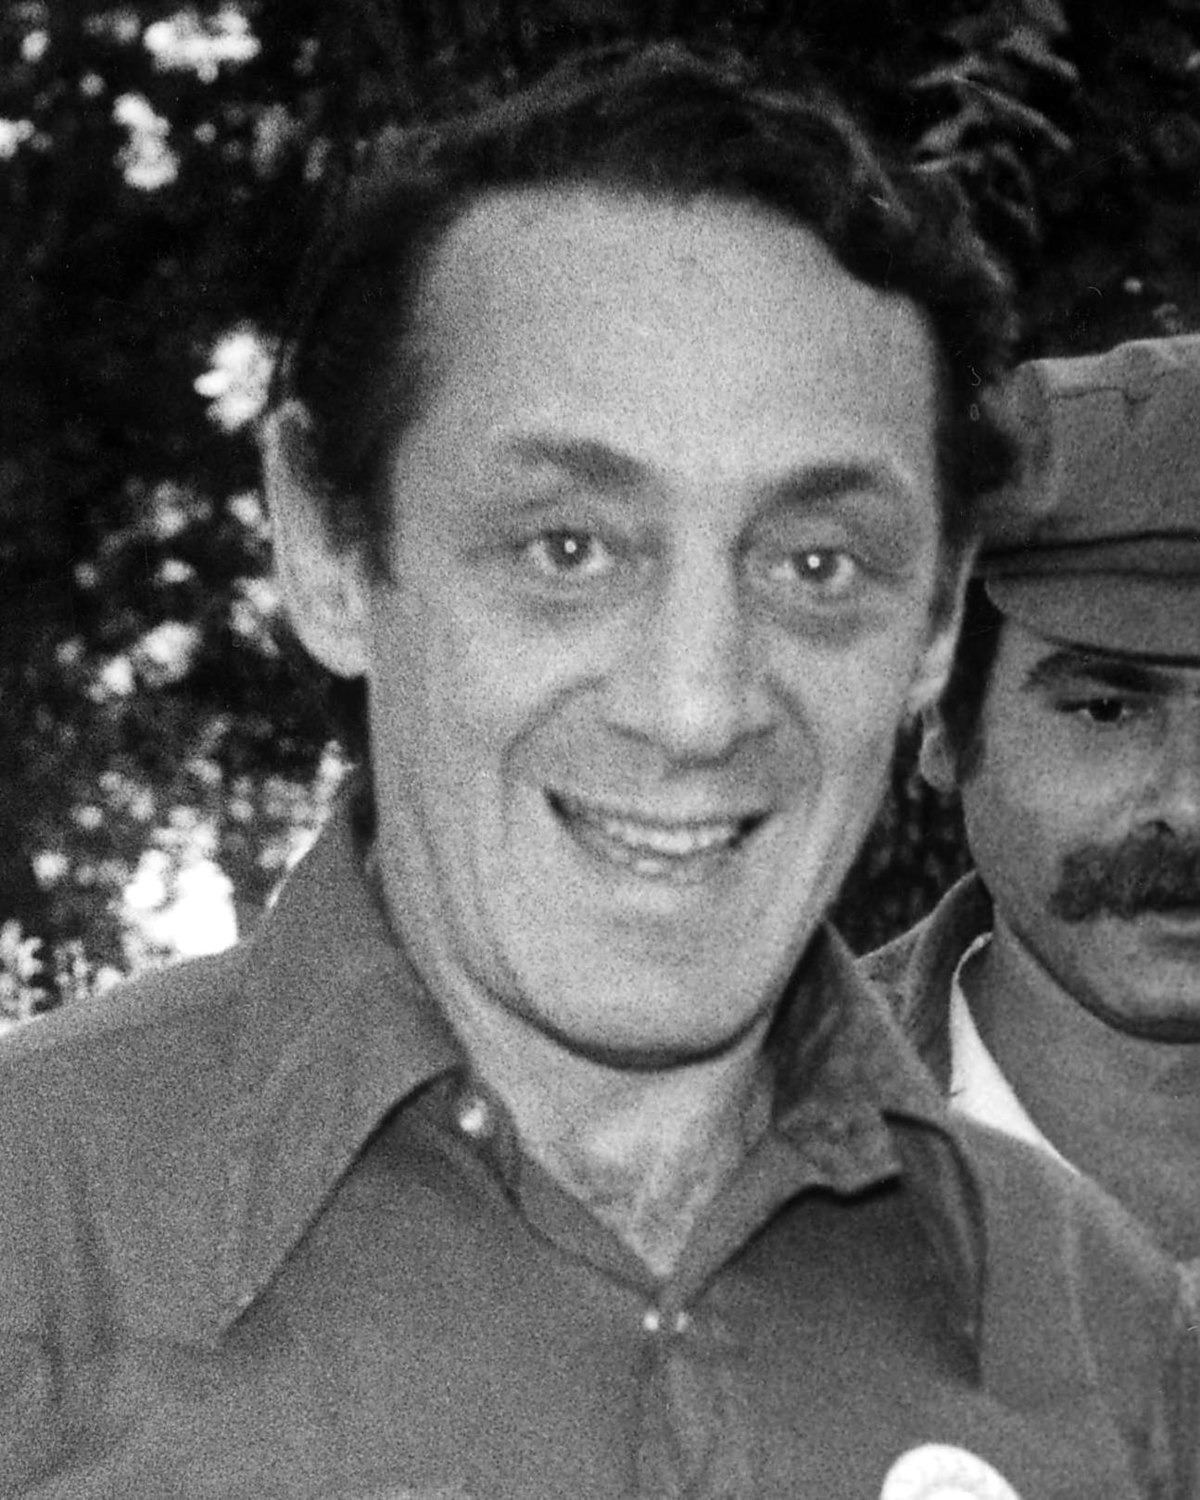 Harvey Milk (1930-1978)